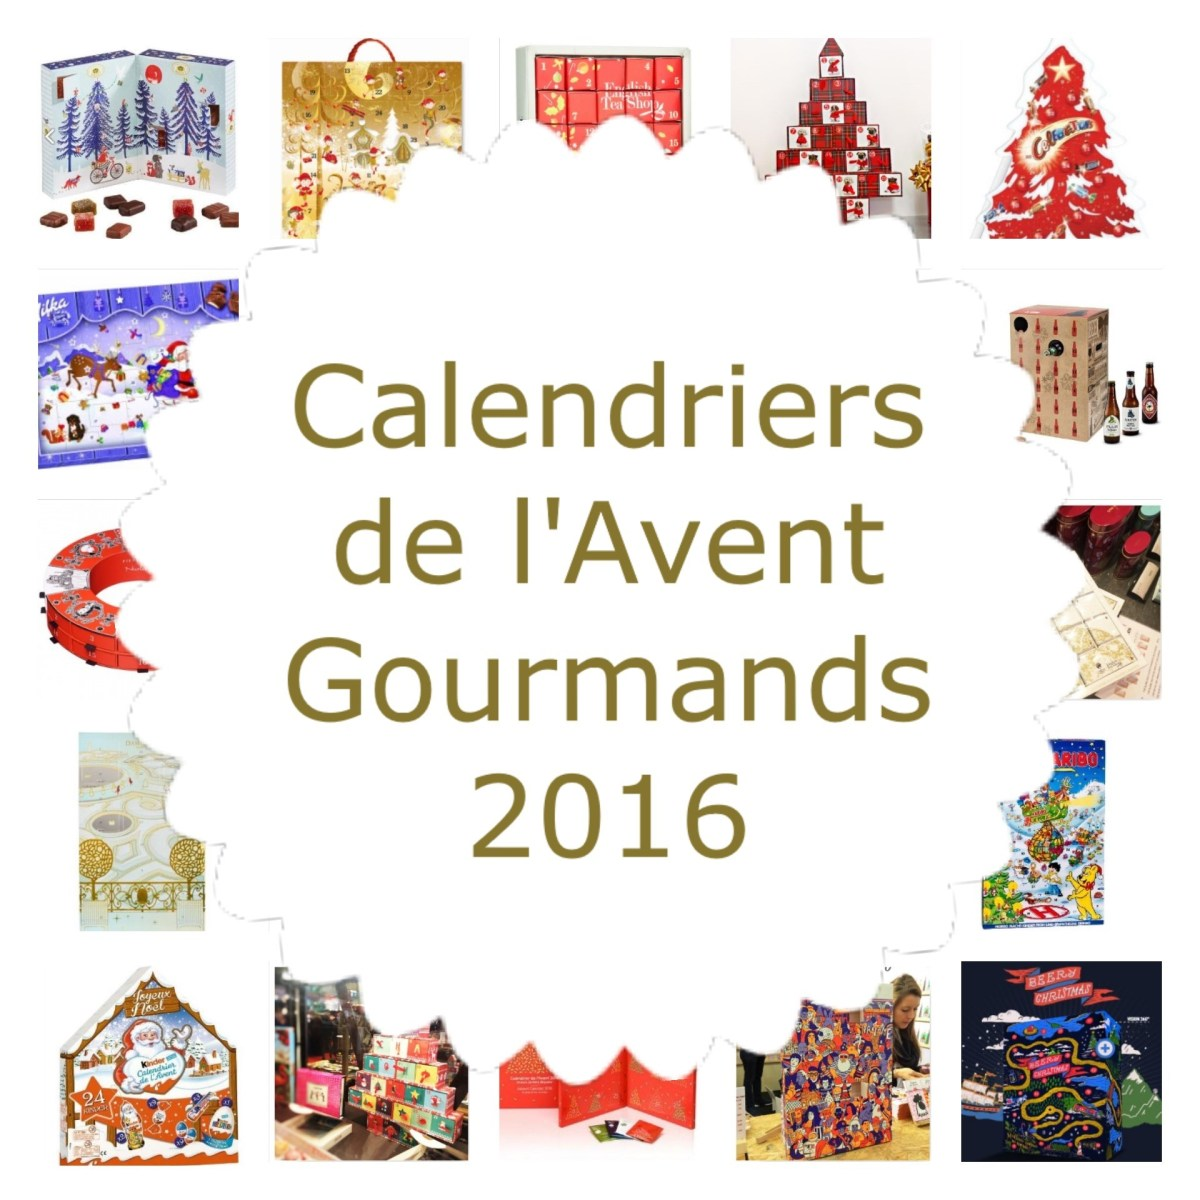 Plus de 20 calendriers de l'Avent Gourmands 2016 (Chocolats...)